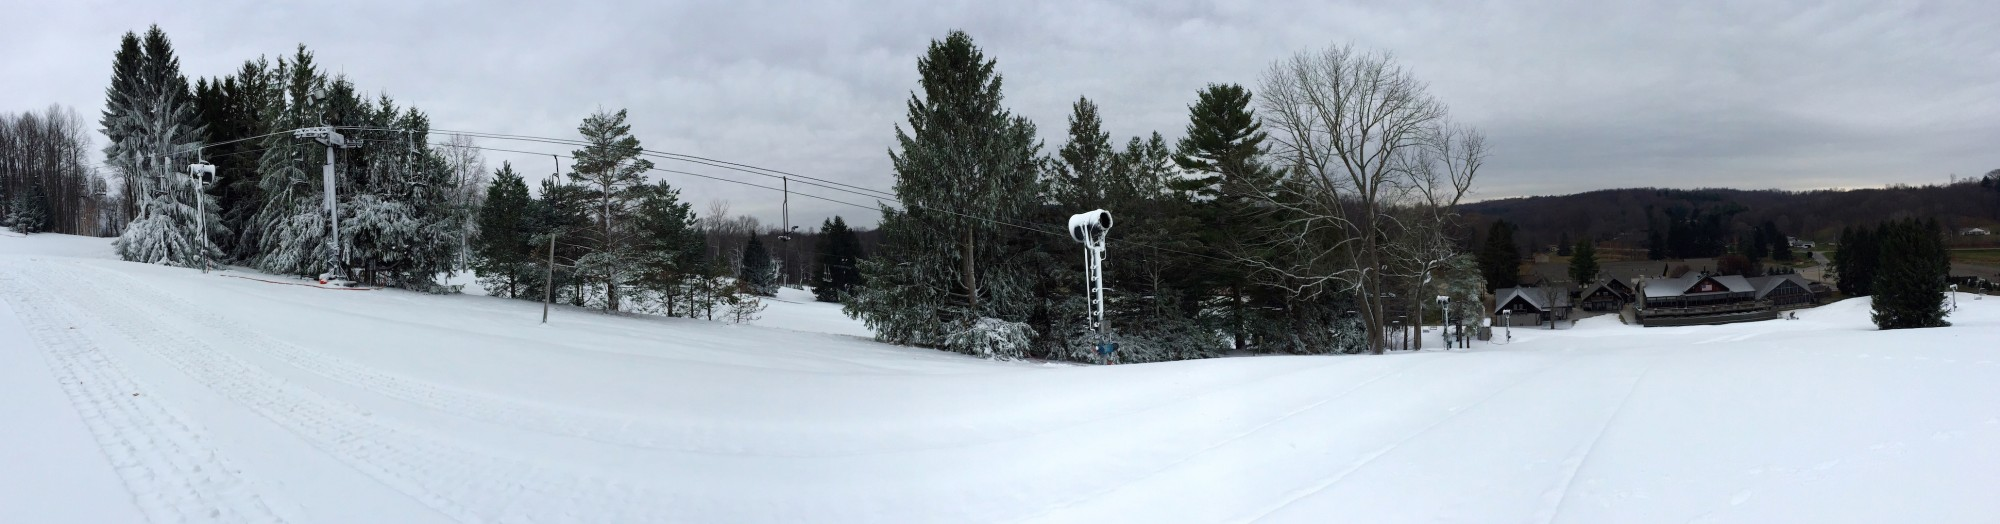 After First December #STsnowmaking Campaign 2014